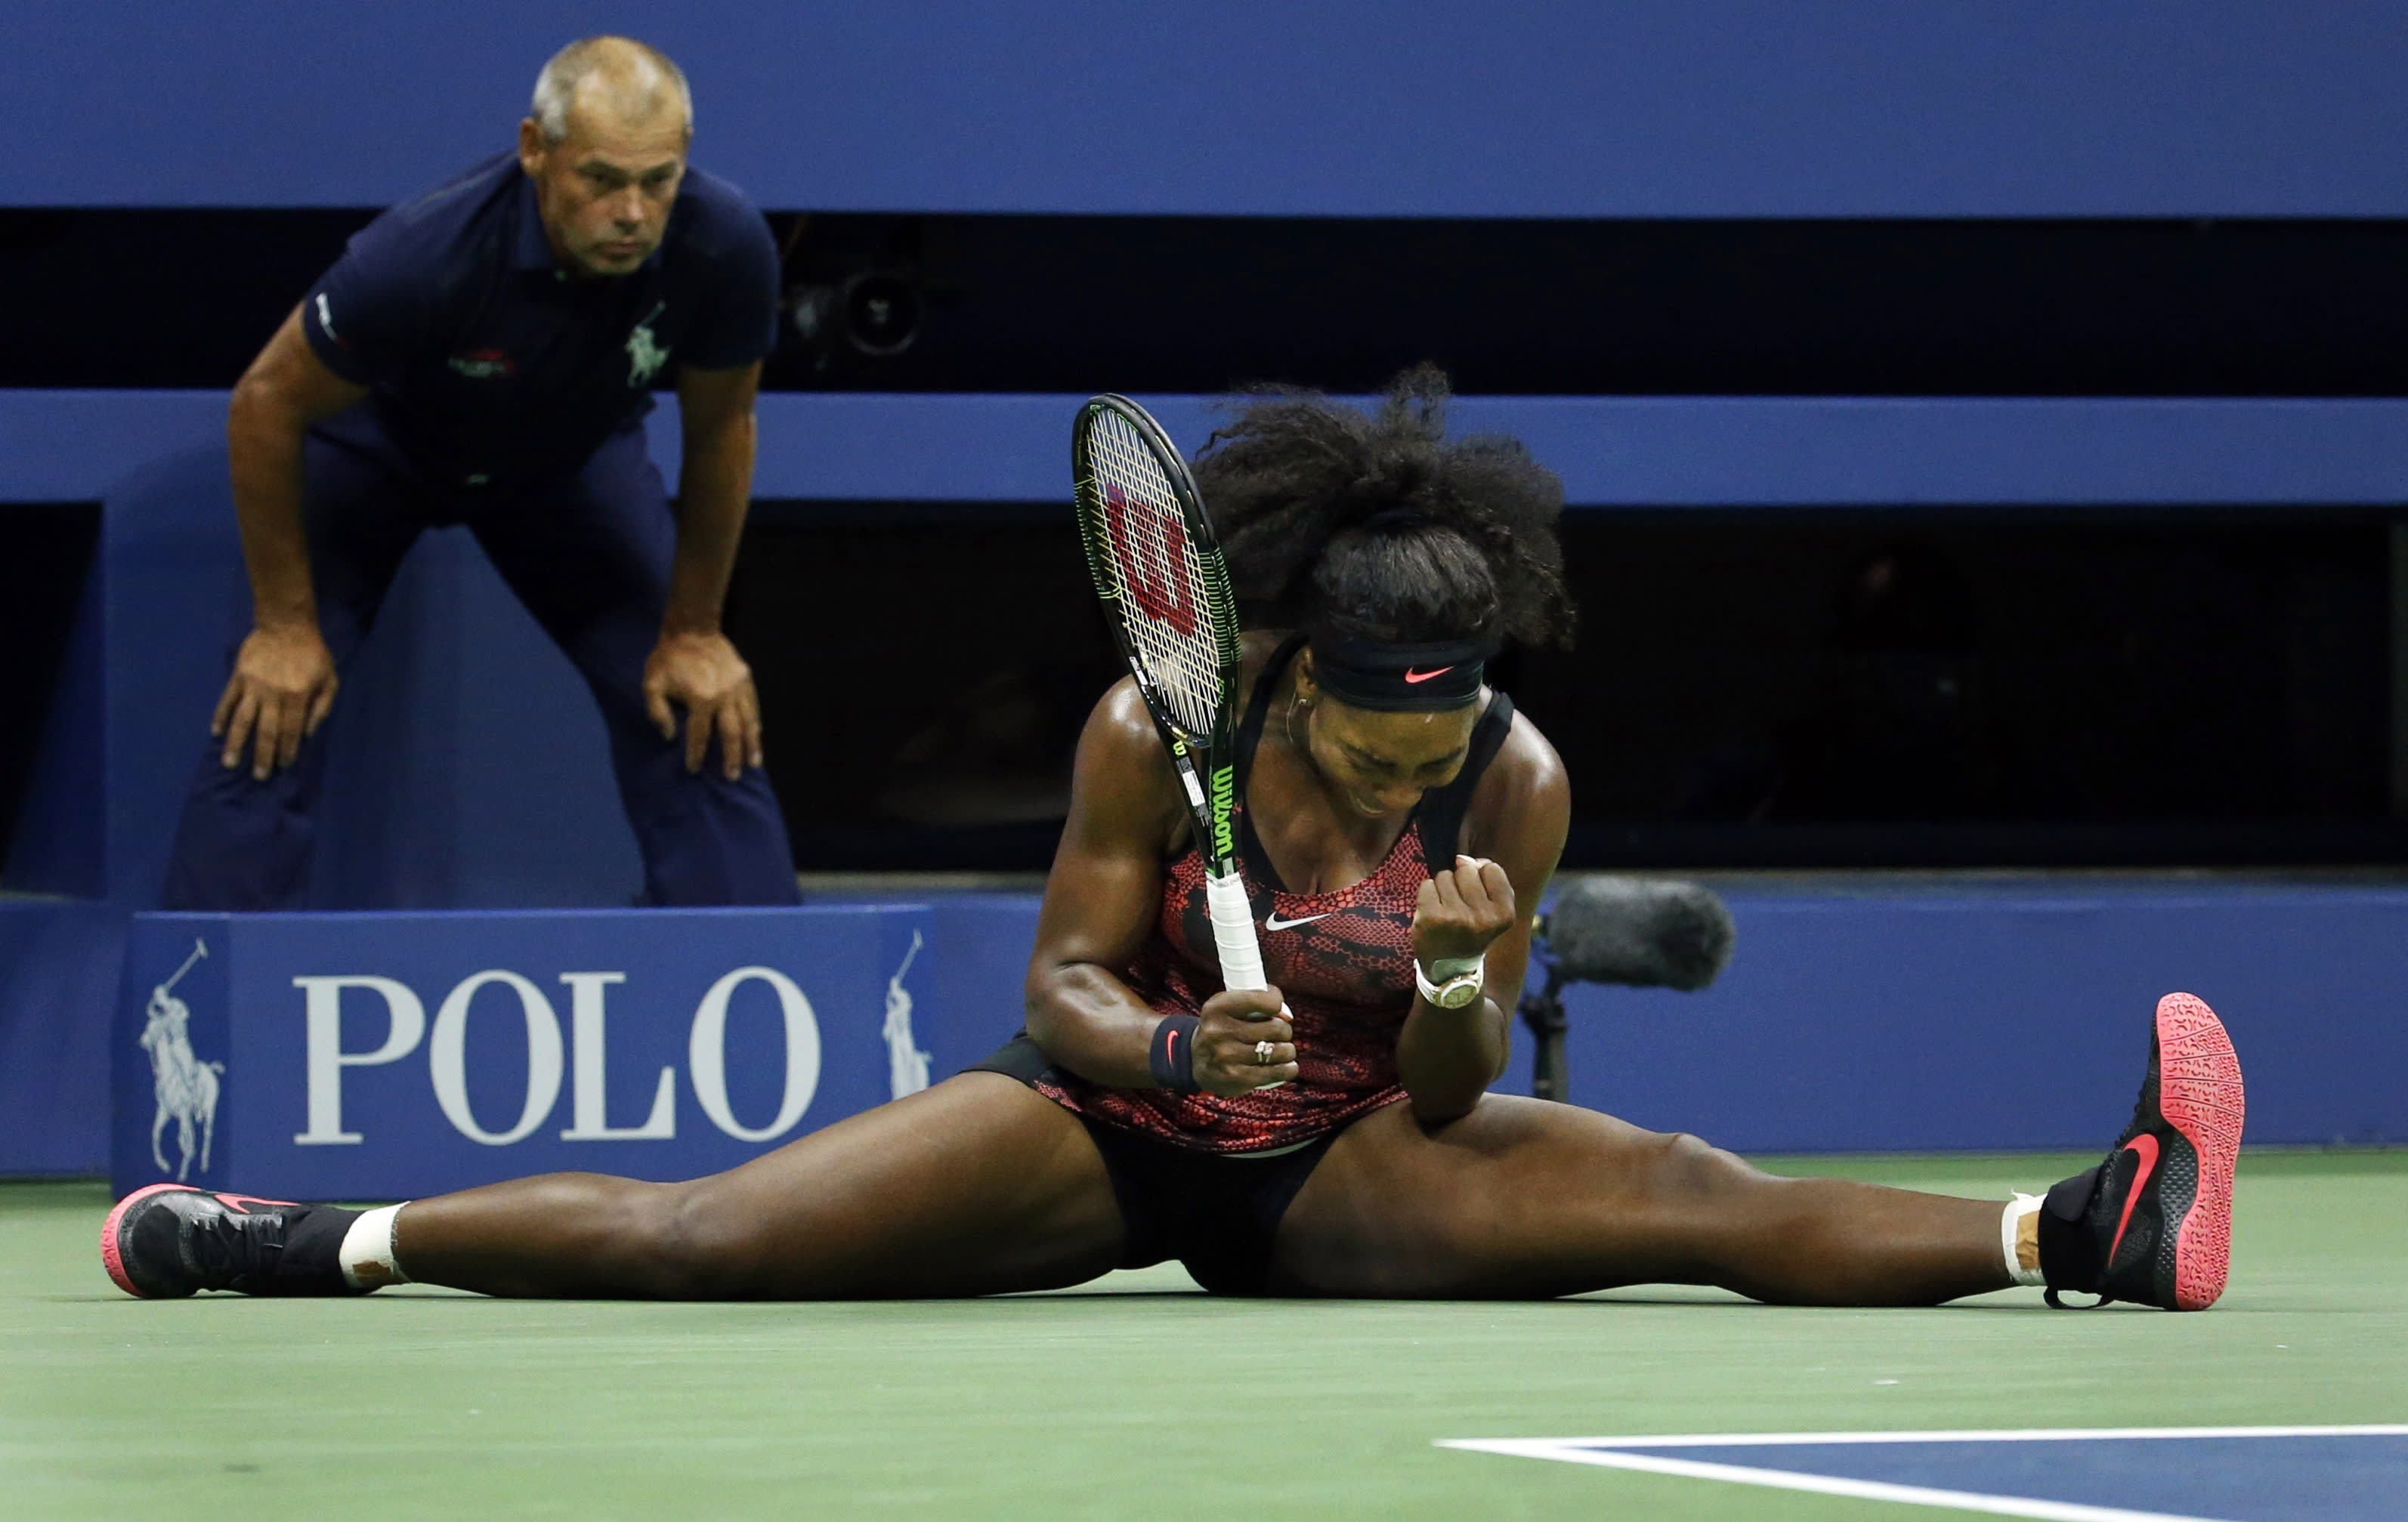 Serena Williams' comeback extends Grand Slam try at US Open